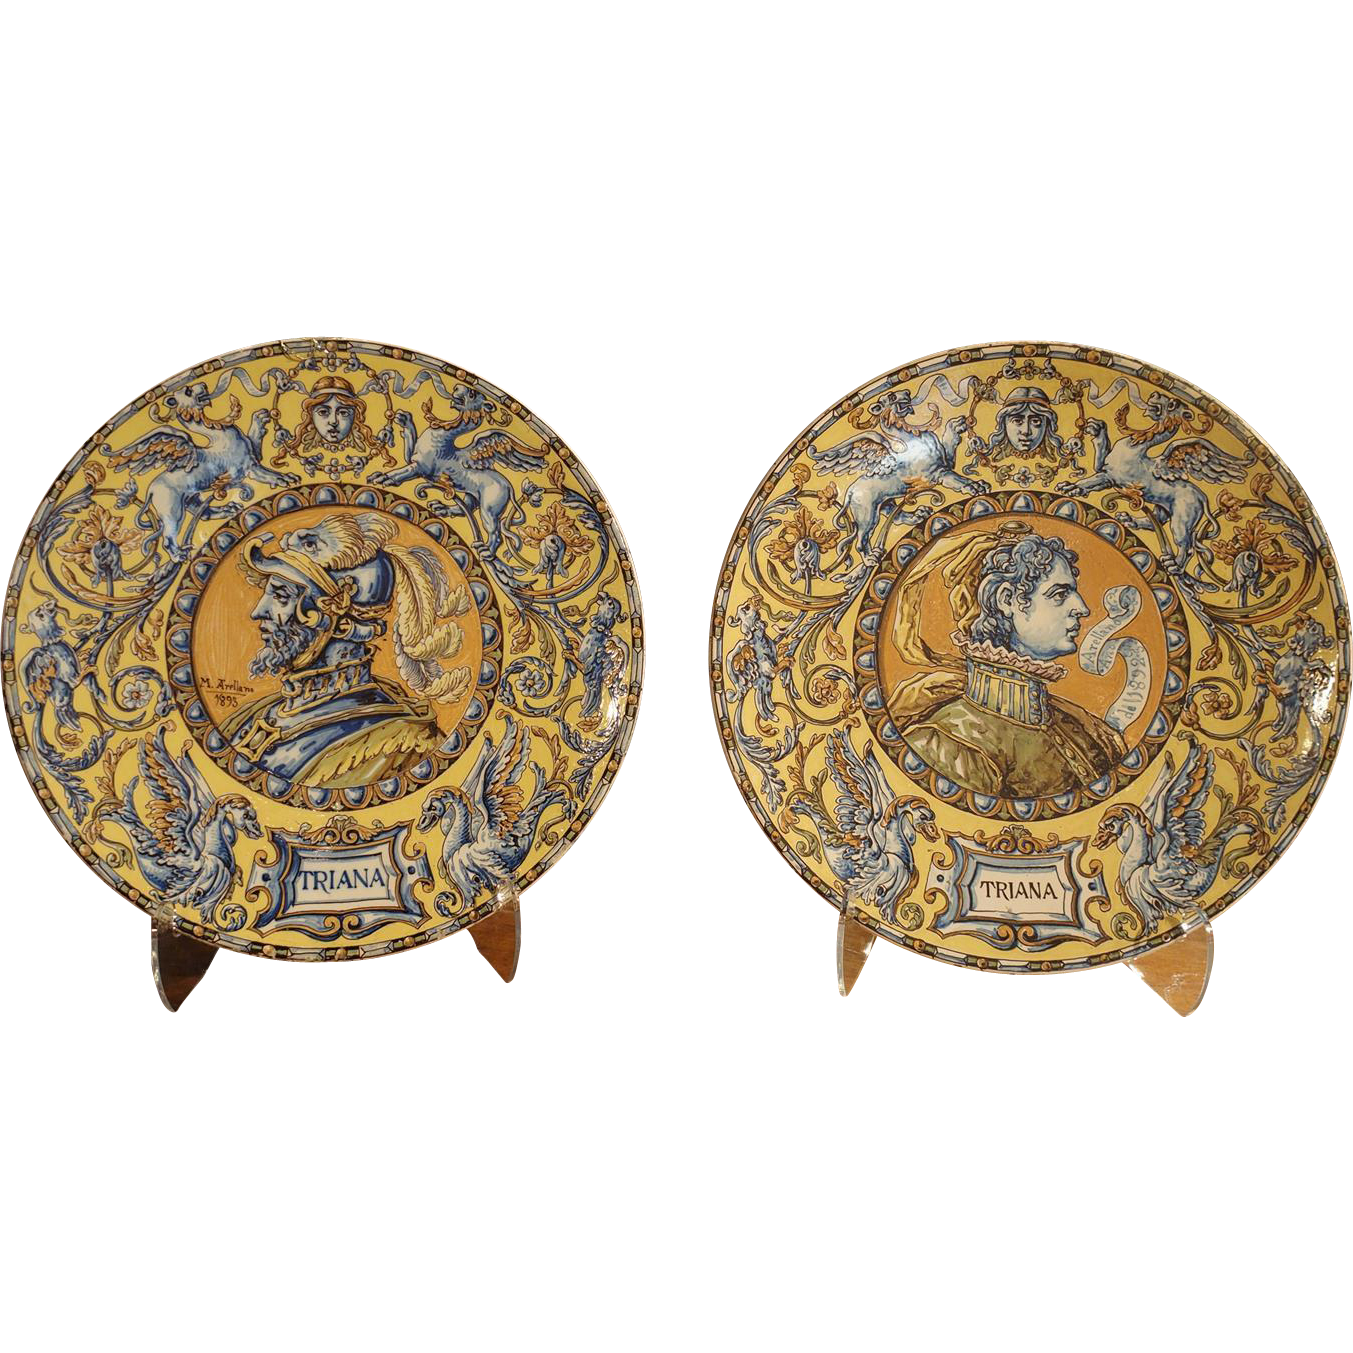 Pair of Signed 19th Century Spanish Plates from Triana